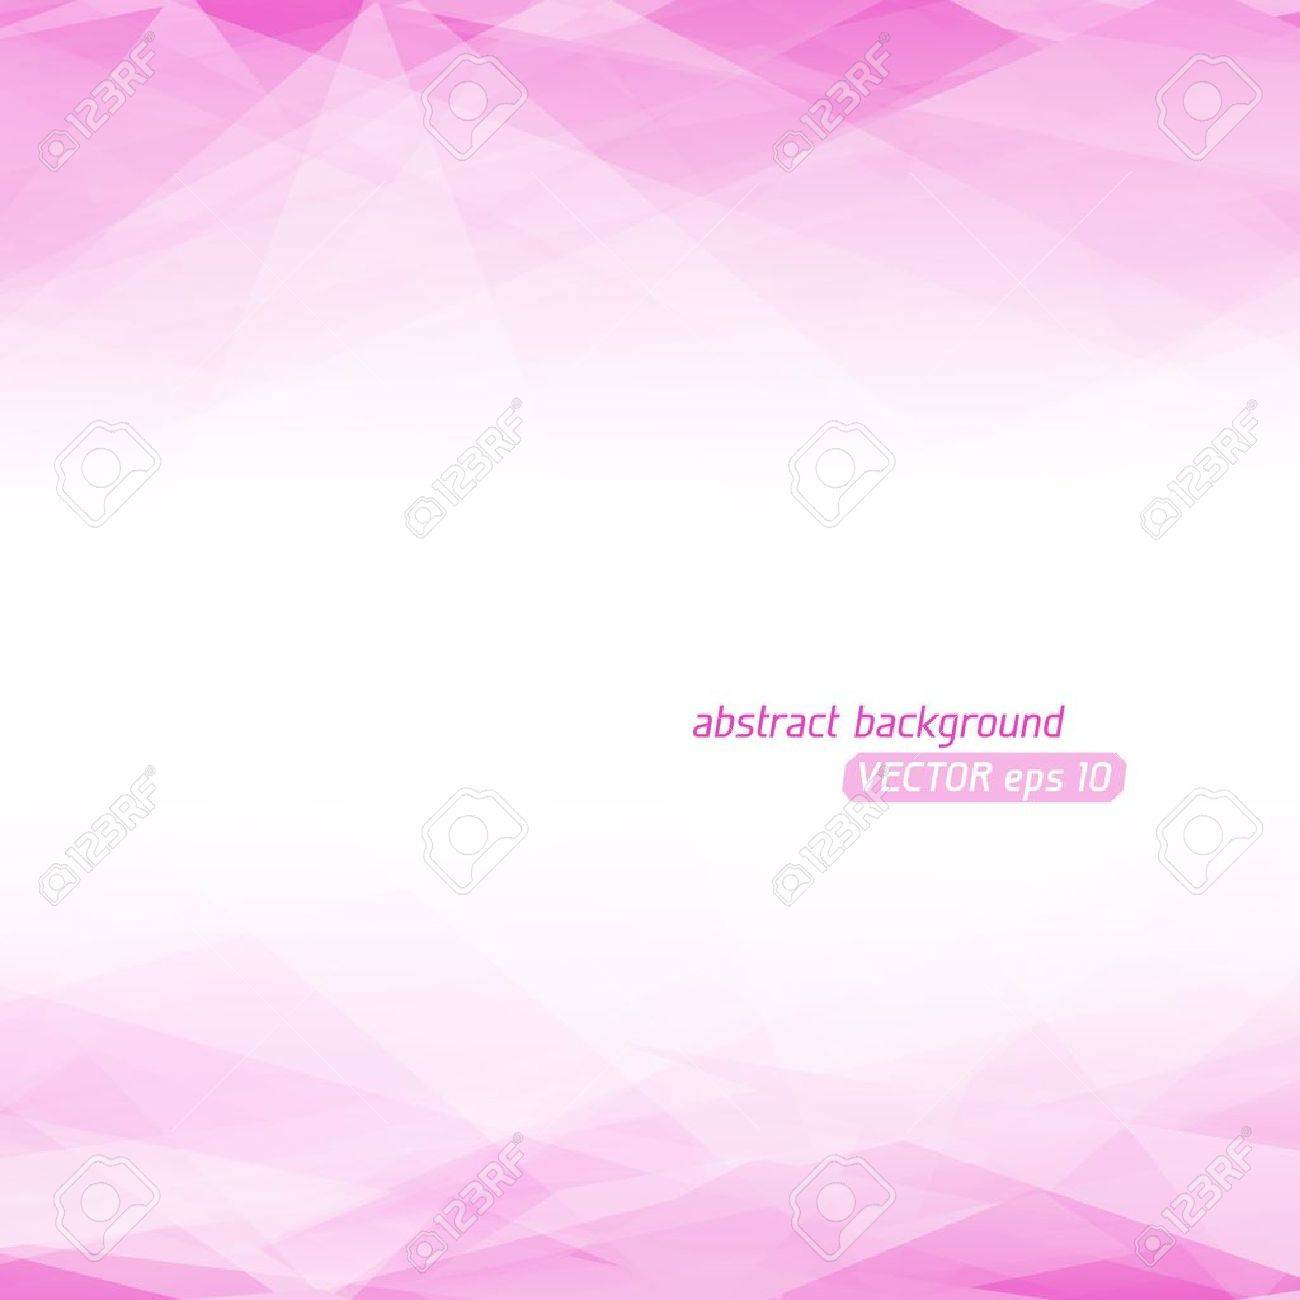 Abstract vector background Stock Vector - 19143889